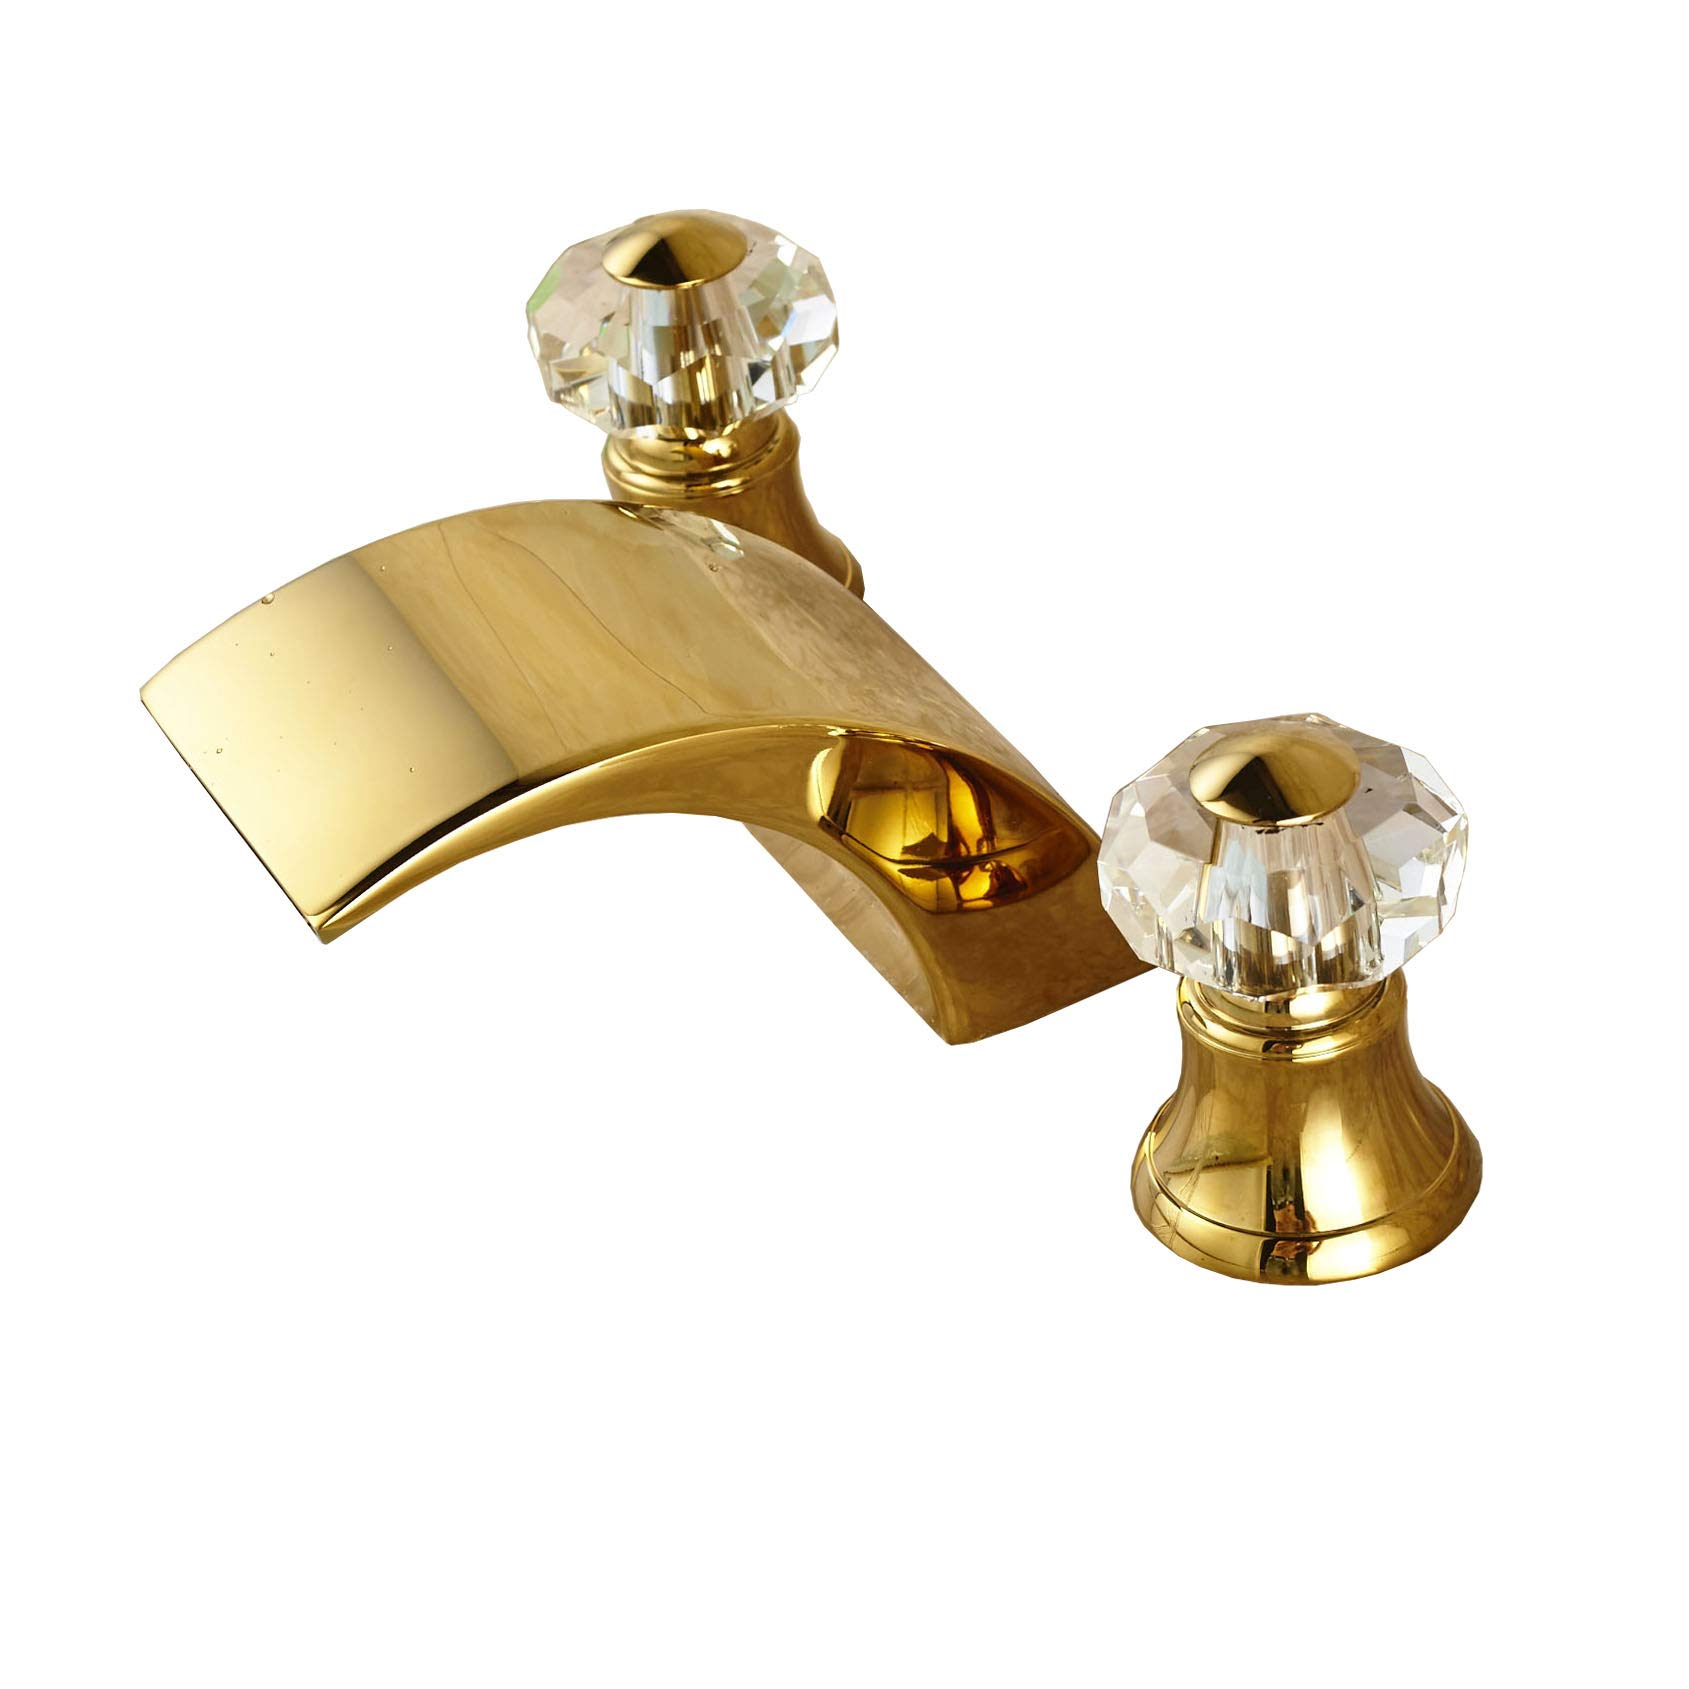 Rozin Luxury Gold Finish Waterfall Bathroom Sink Faucet Two Crystal Knobs  Widespread Mixer Tap